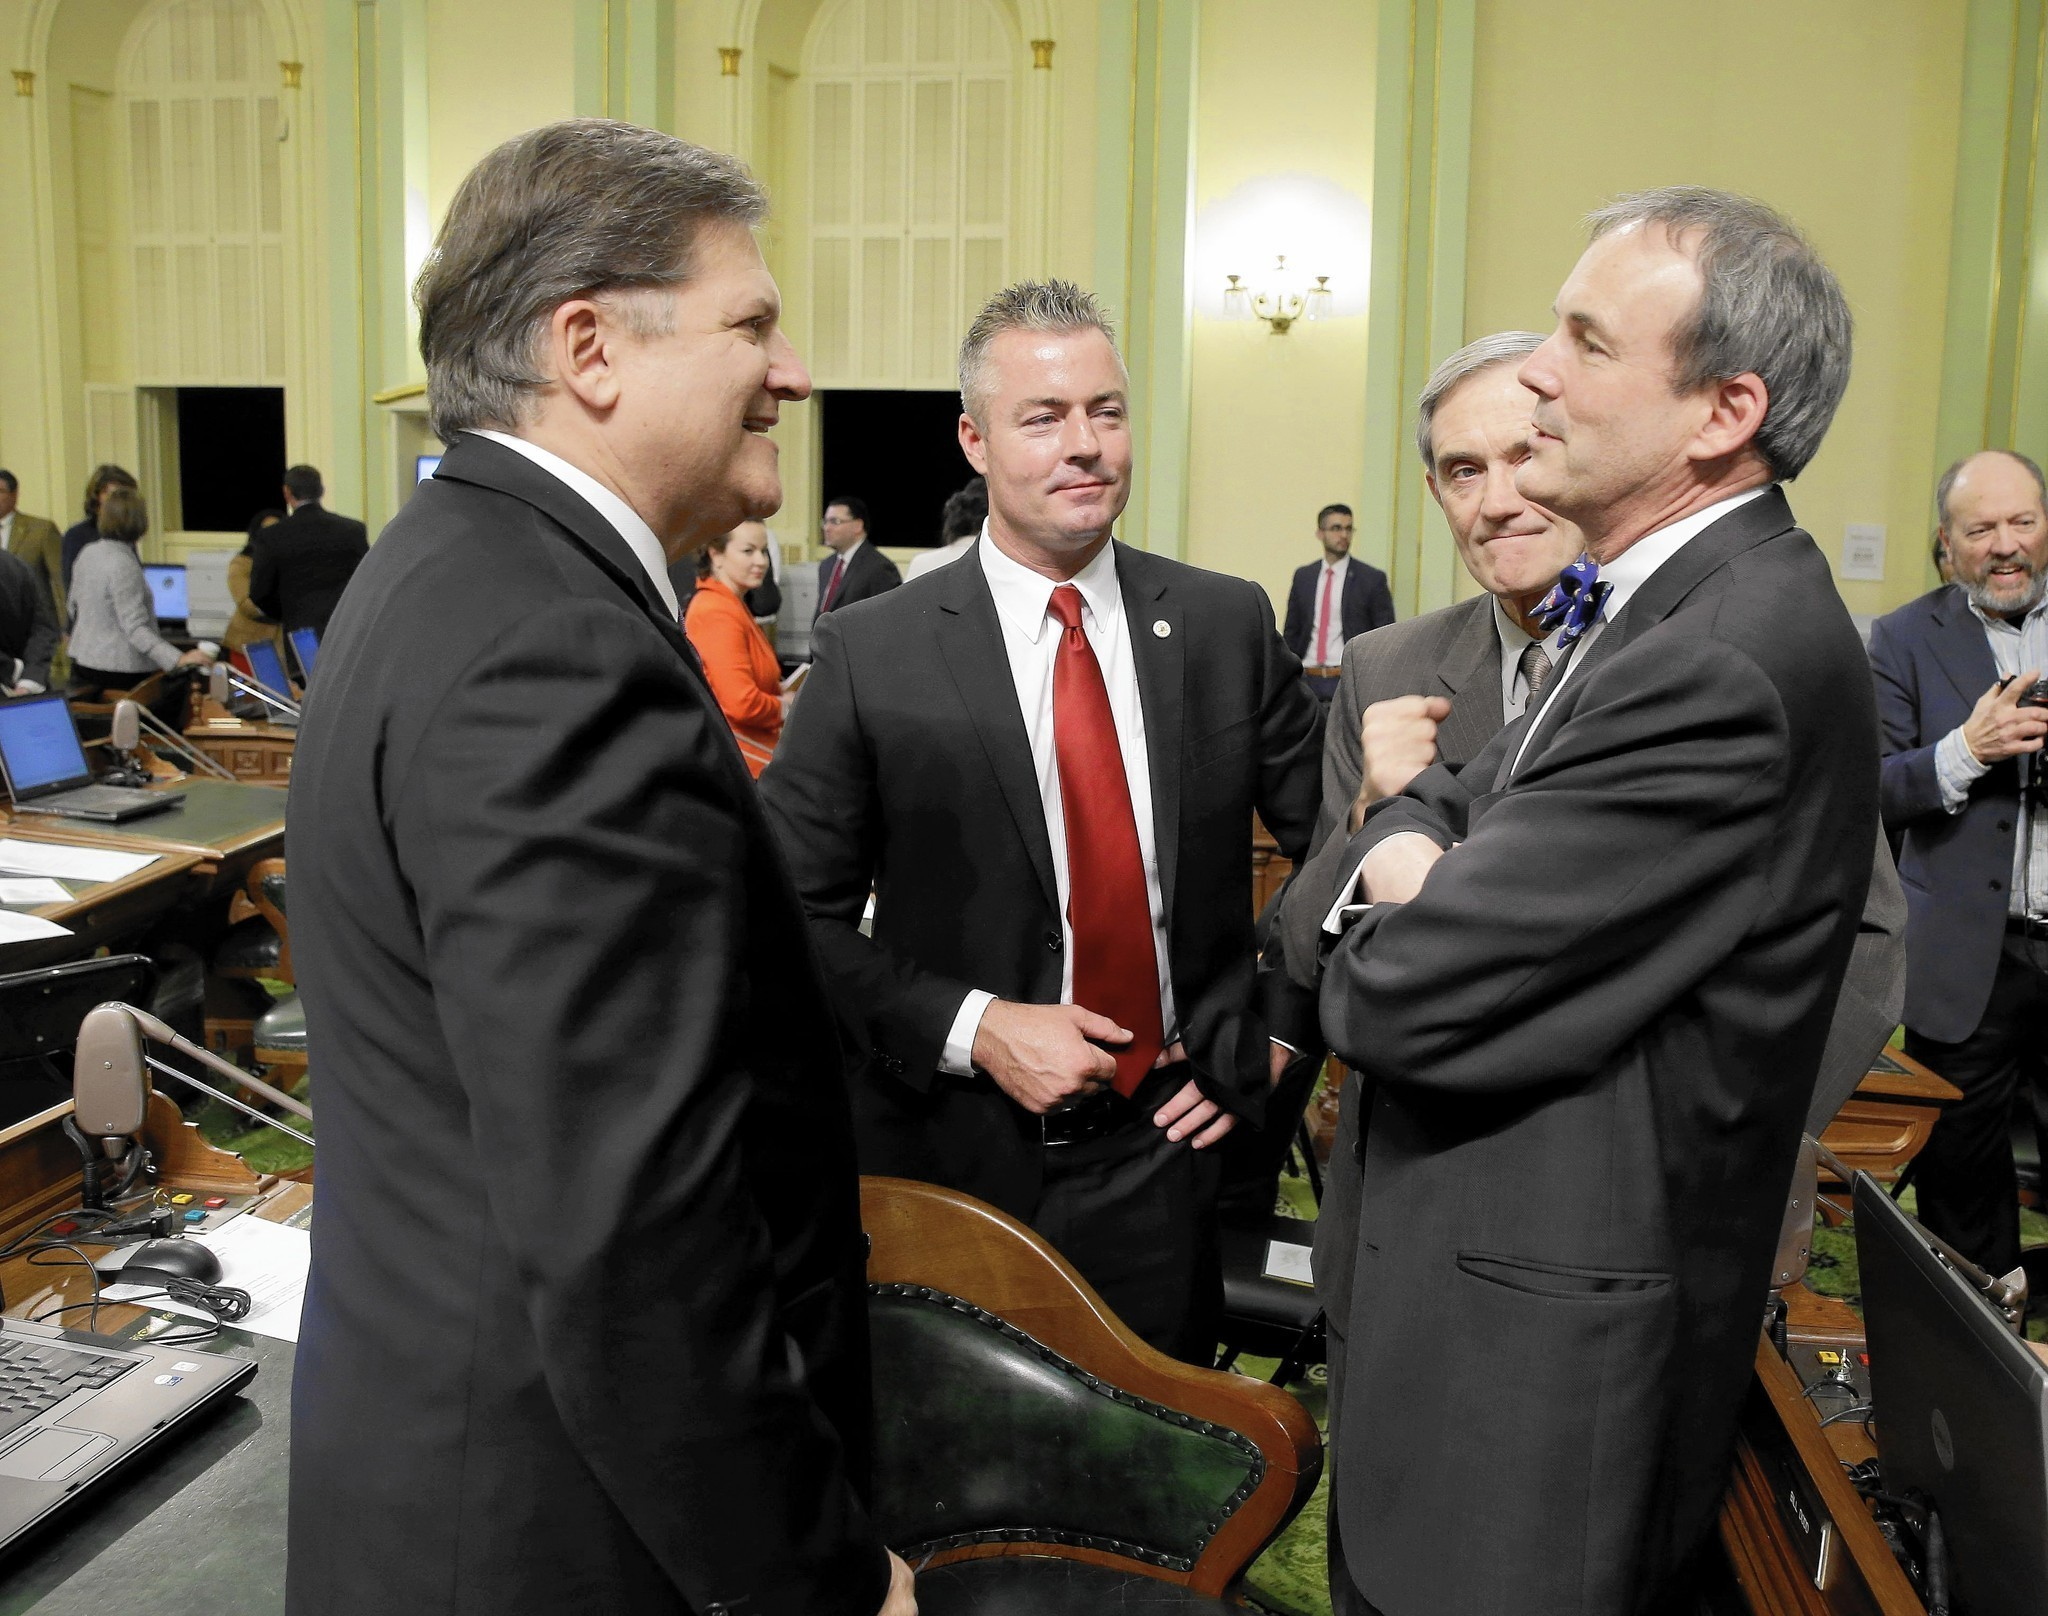 GOP Assemblyman Travis Allen, in red tie, with Democratic state Sen. Bob Hertzberg, left, and Charles Munger Jr., far right, in 2014. (Rich Pedroncelli / Associated Press)